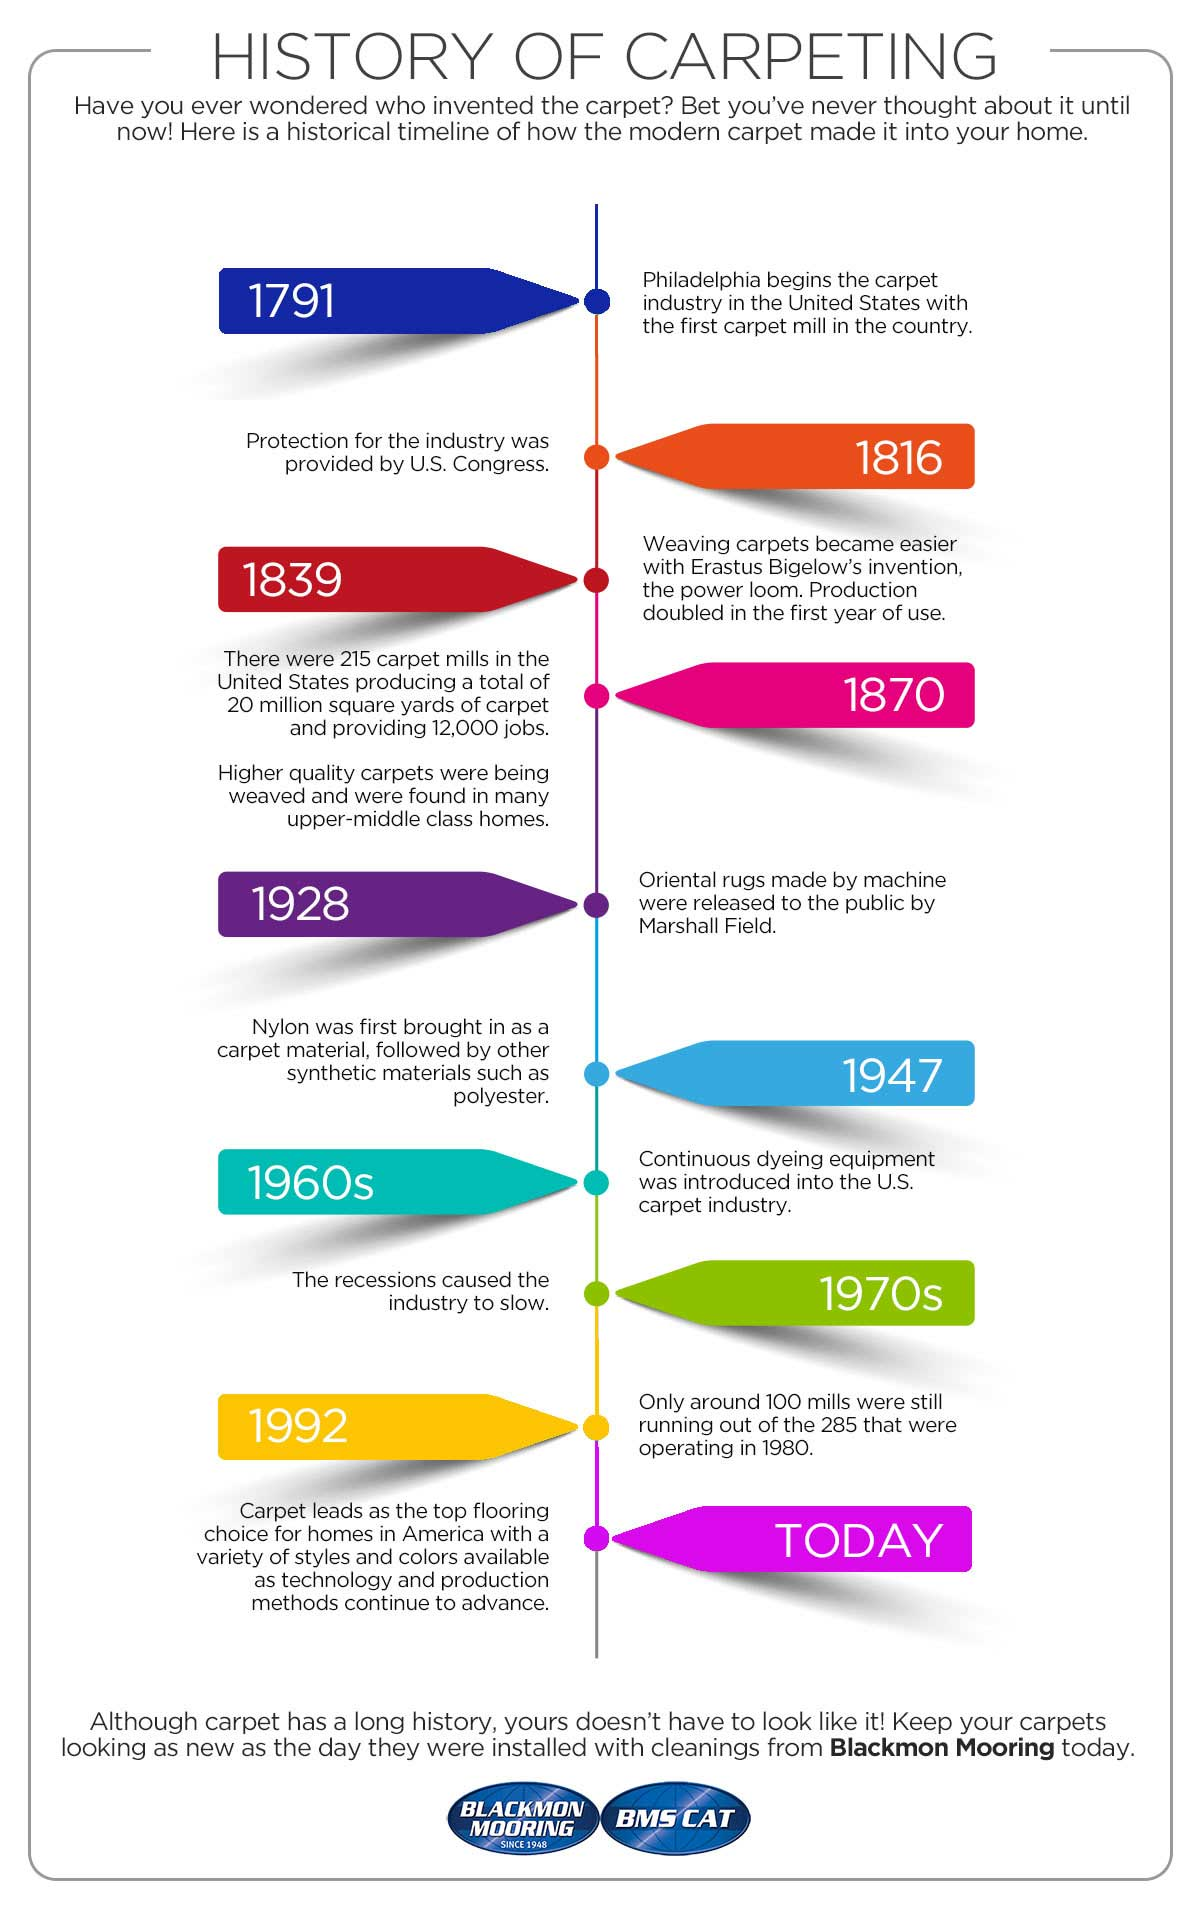 History of Carpeting Timeline Infographic